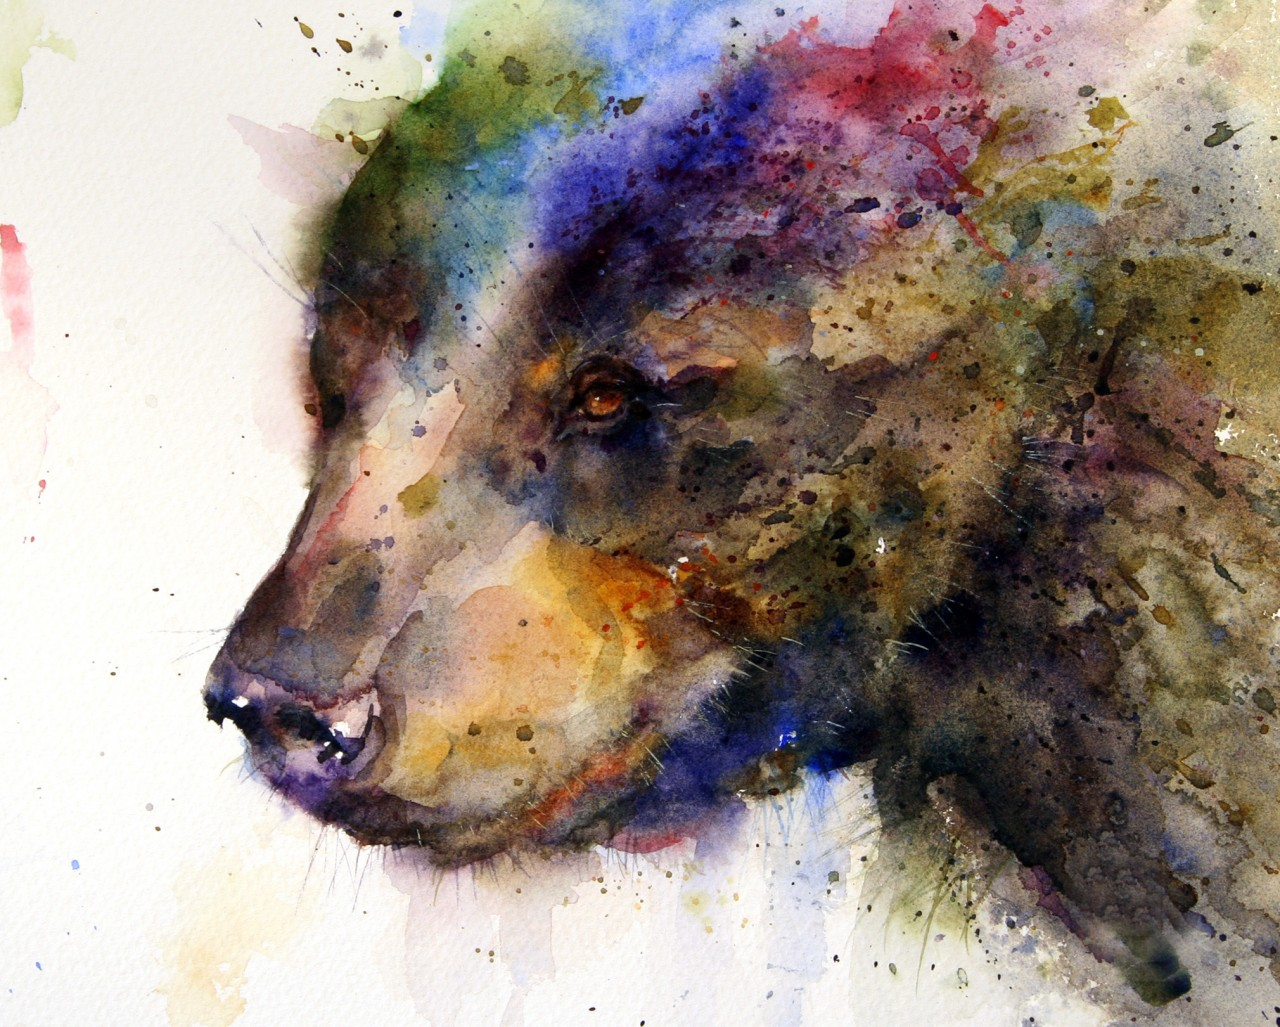 Simply Creative: Watercolor Animals Paintings by Dean Crouser: 4rtgallery.blogspot.com/2013/09/watercolor-animals-paintings-by...